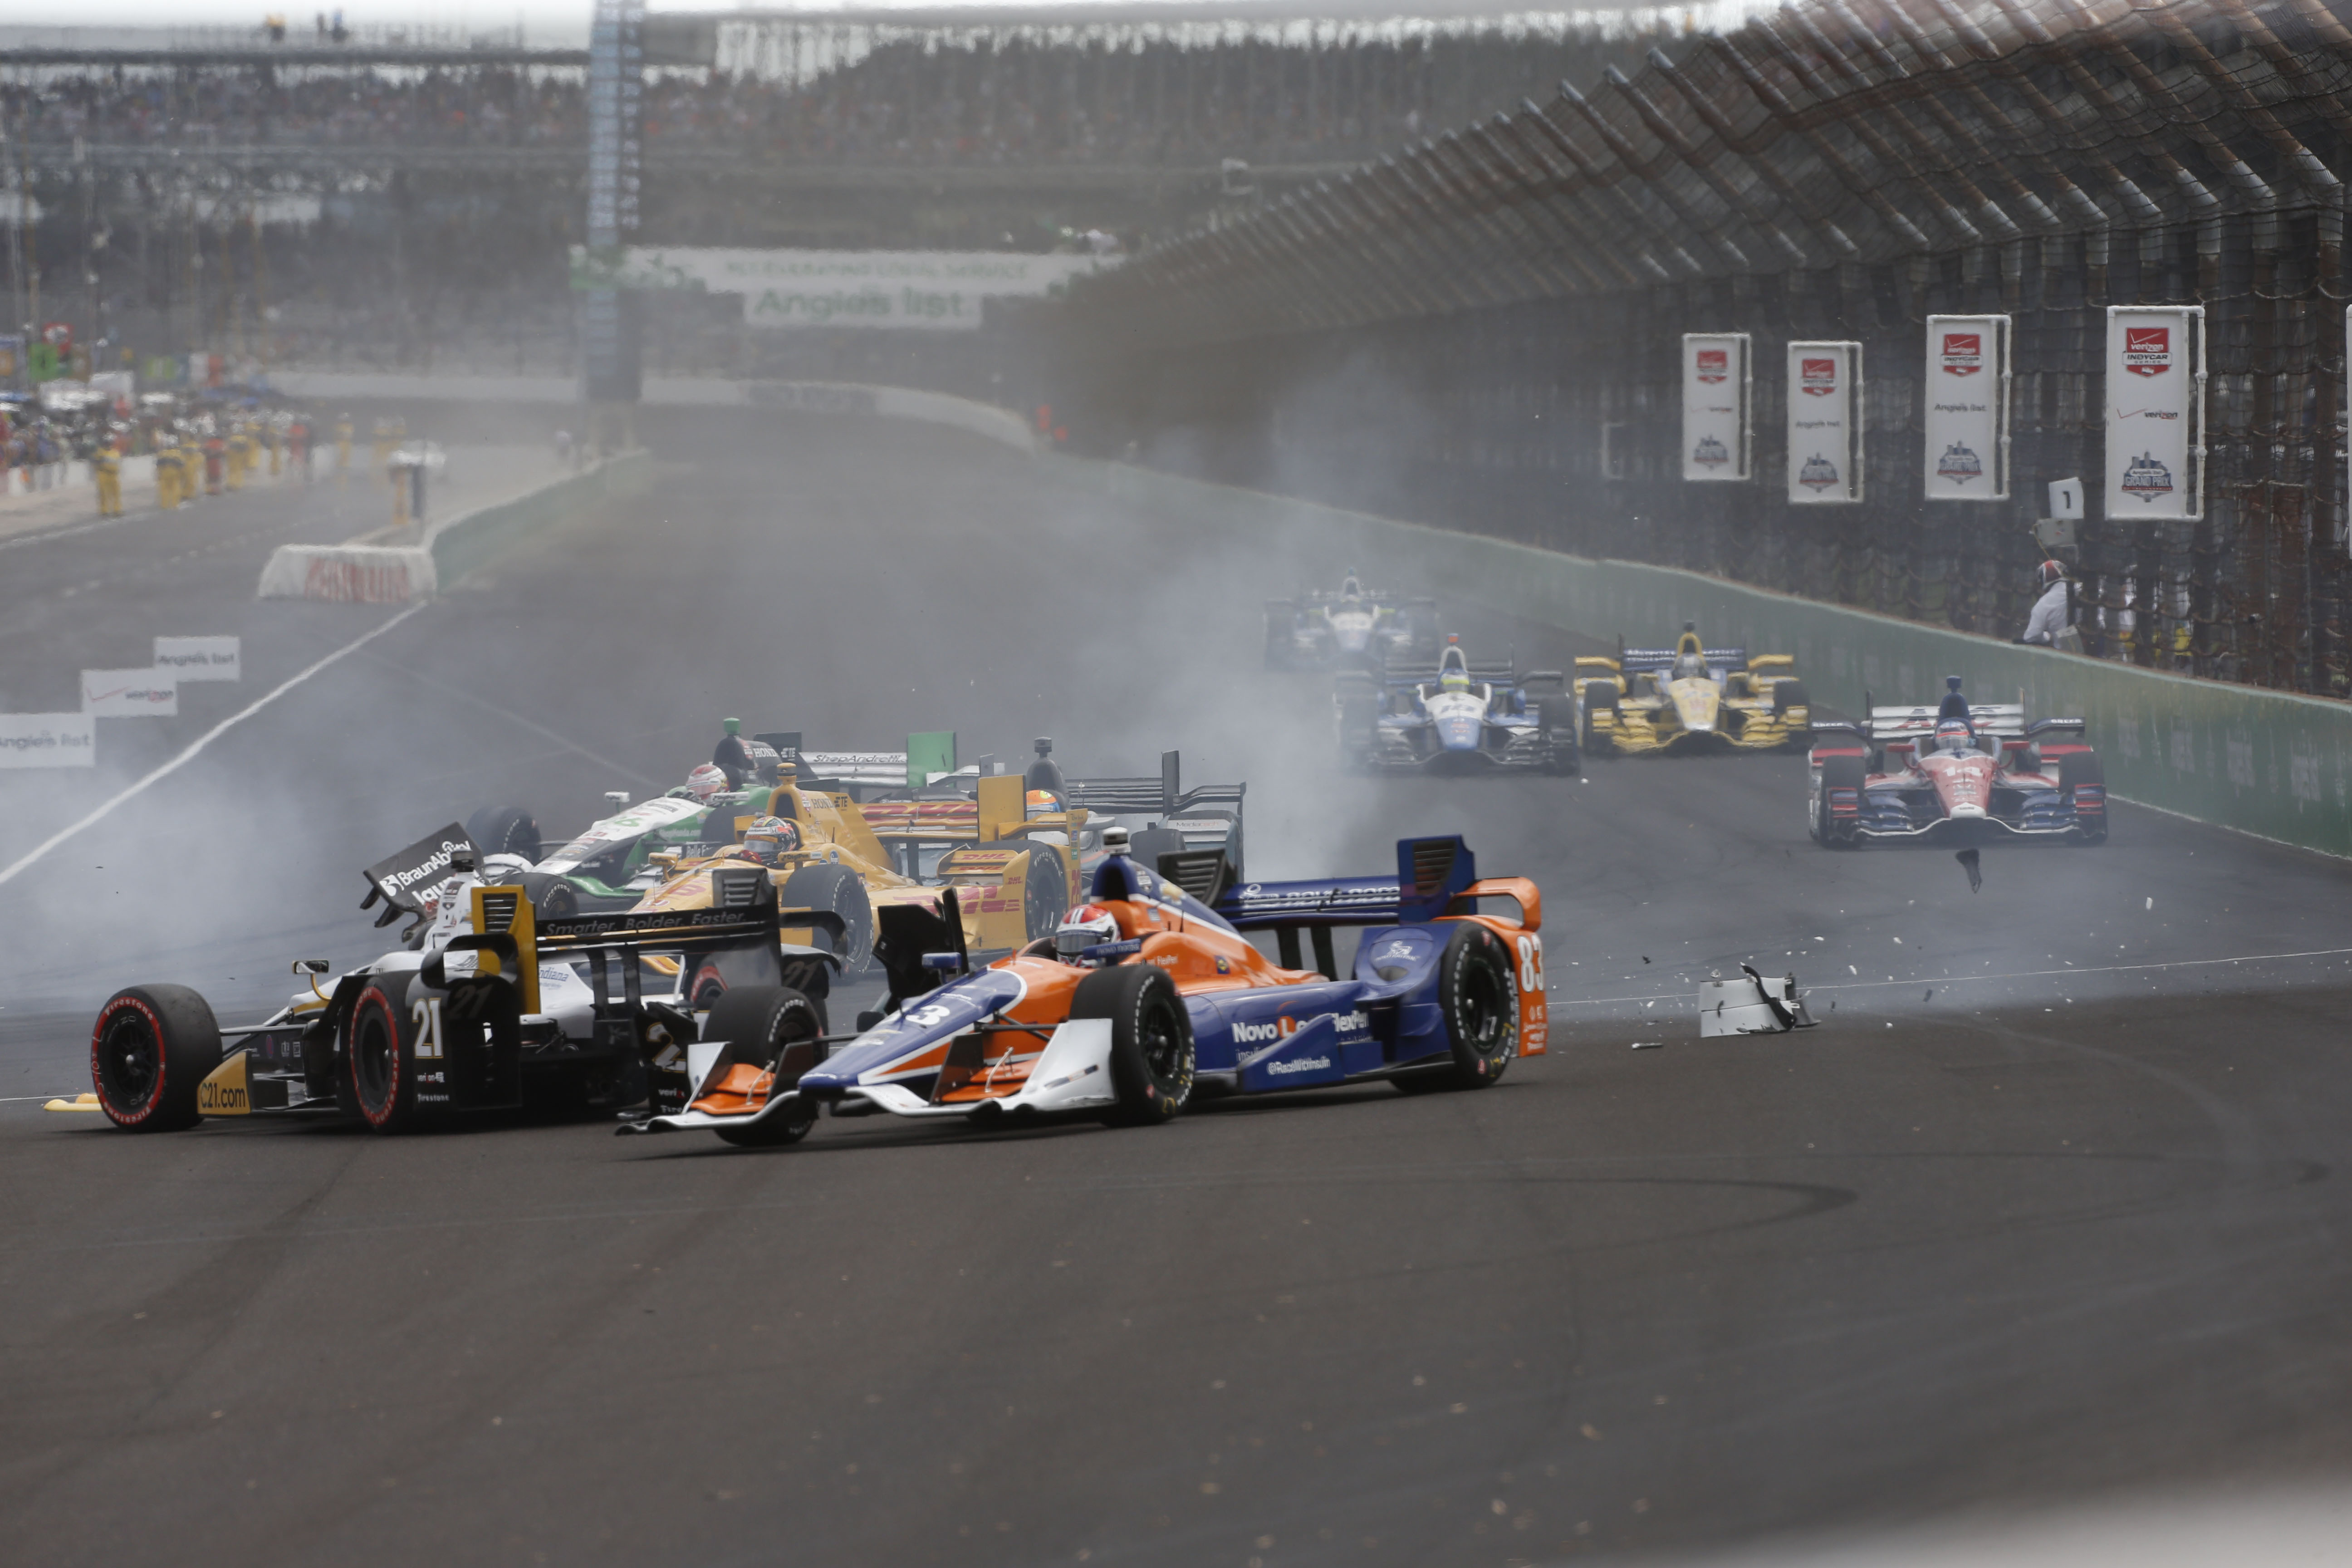 Several IndyCars are involved in a Lap 1, Turn 1 crash during the Grand Prix of Indianapolis (Brian Spurlock, USA TODAY Sports)